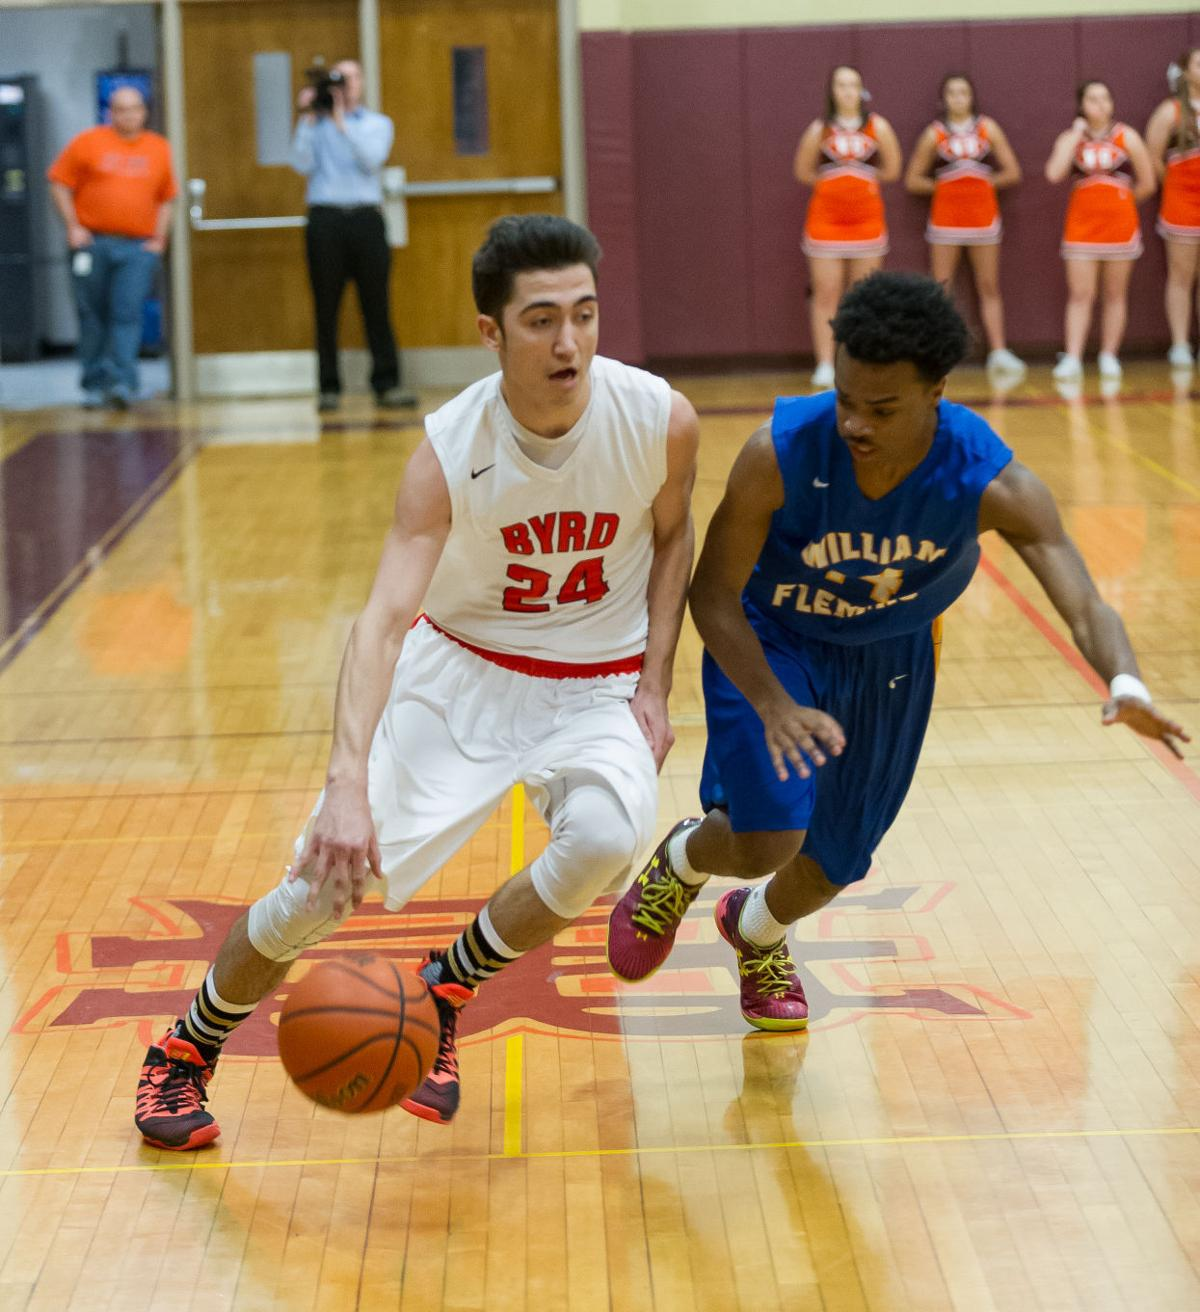 William Byrd earns top seed in Conference 24 boys by ...